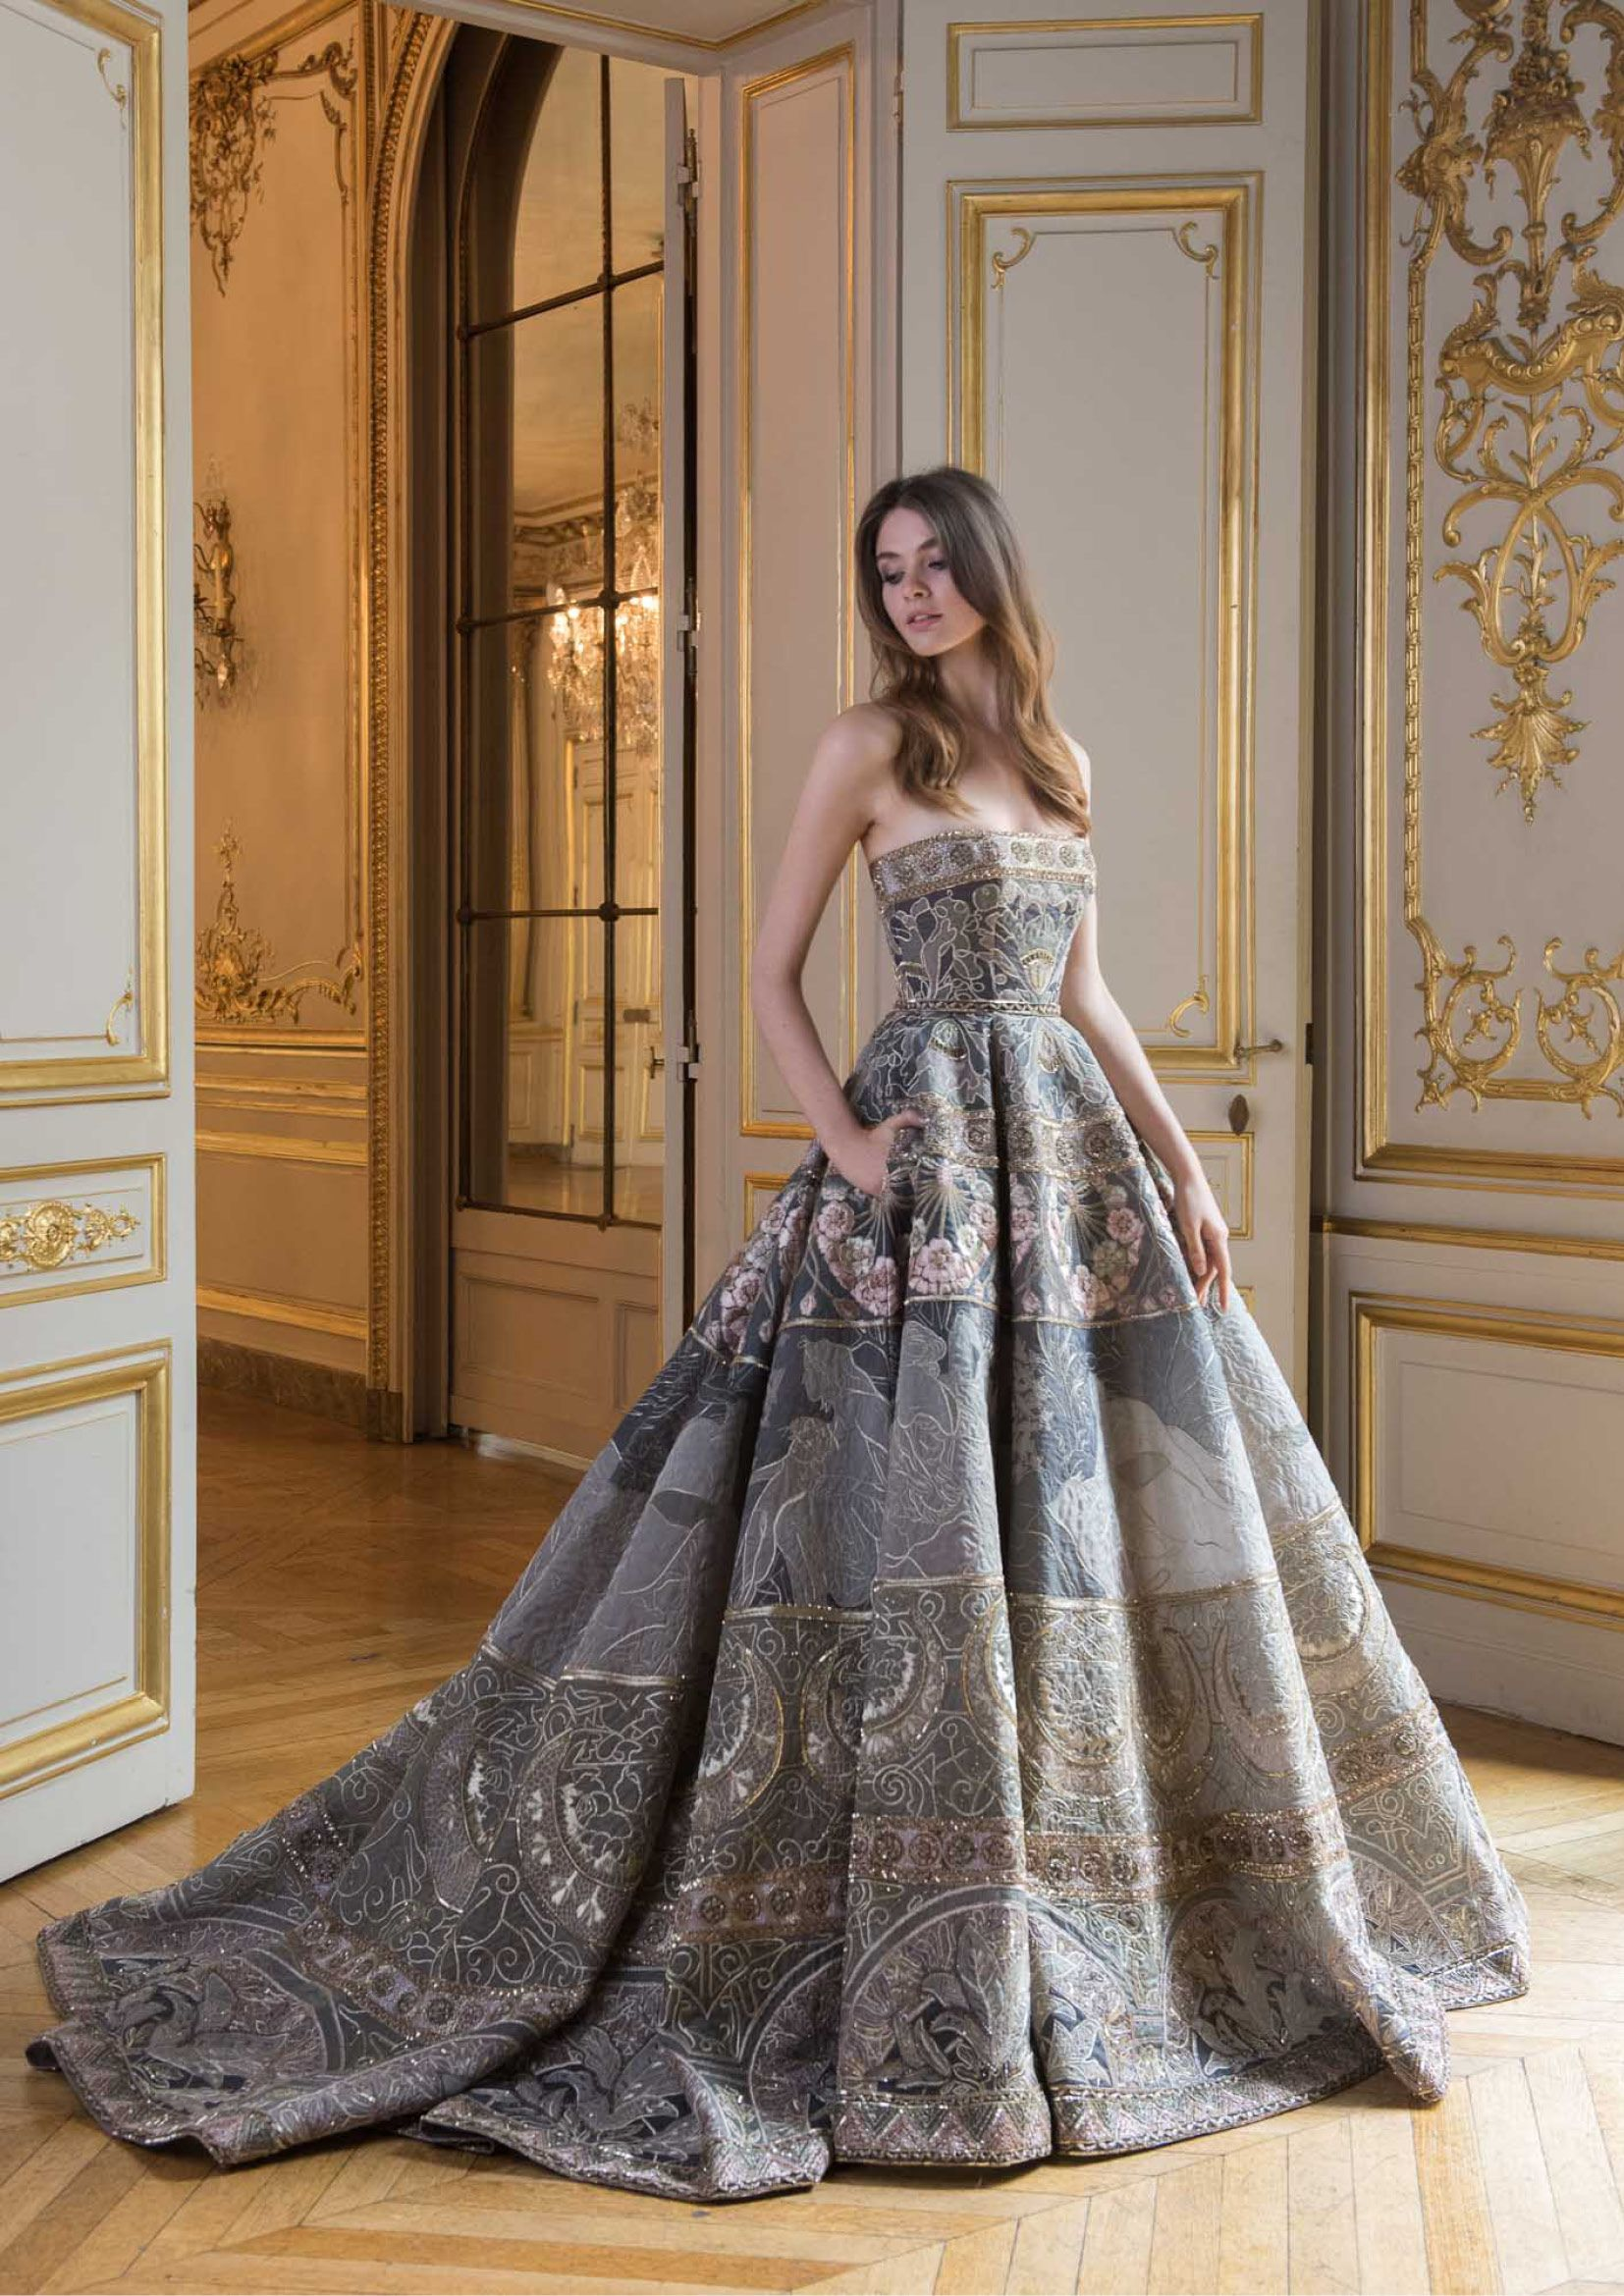 Dress for wedding party 2018  PSAW  Ball gown with scene embroidery and beadwork featuring